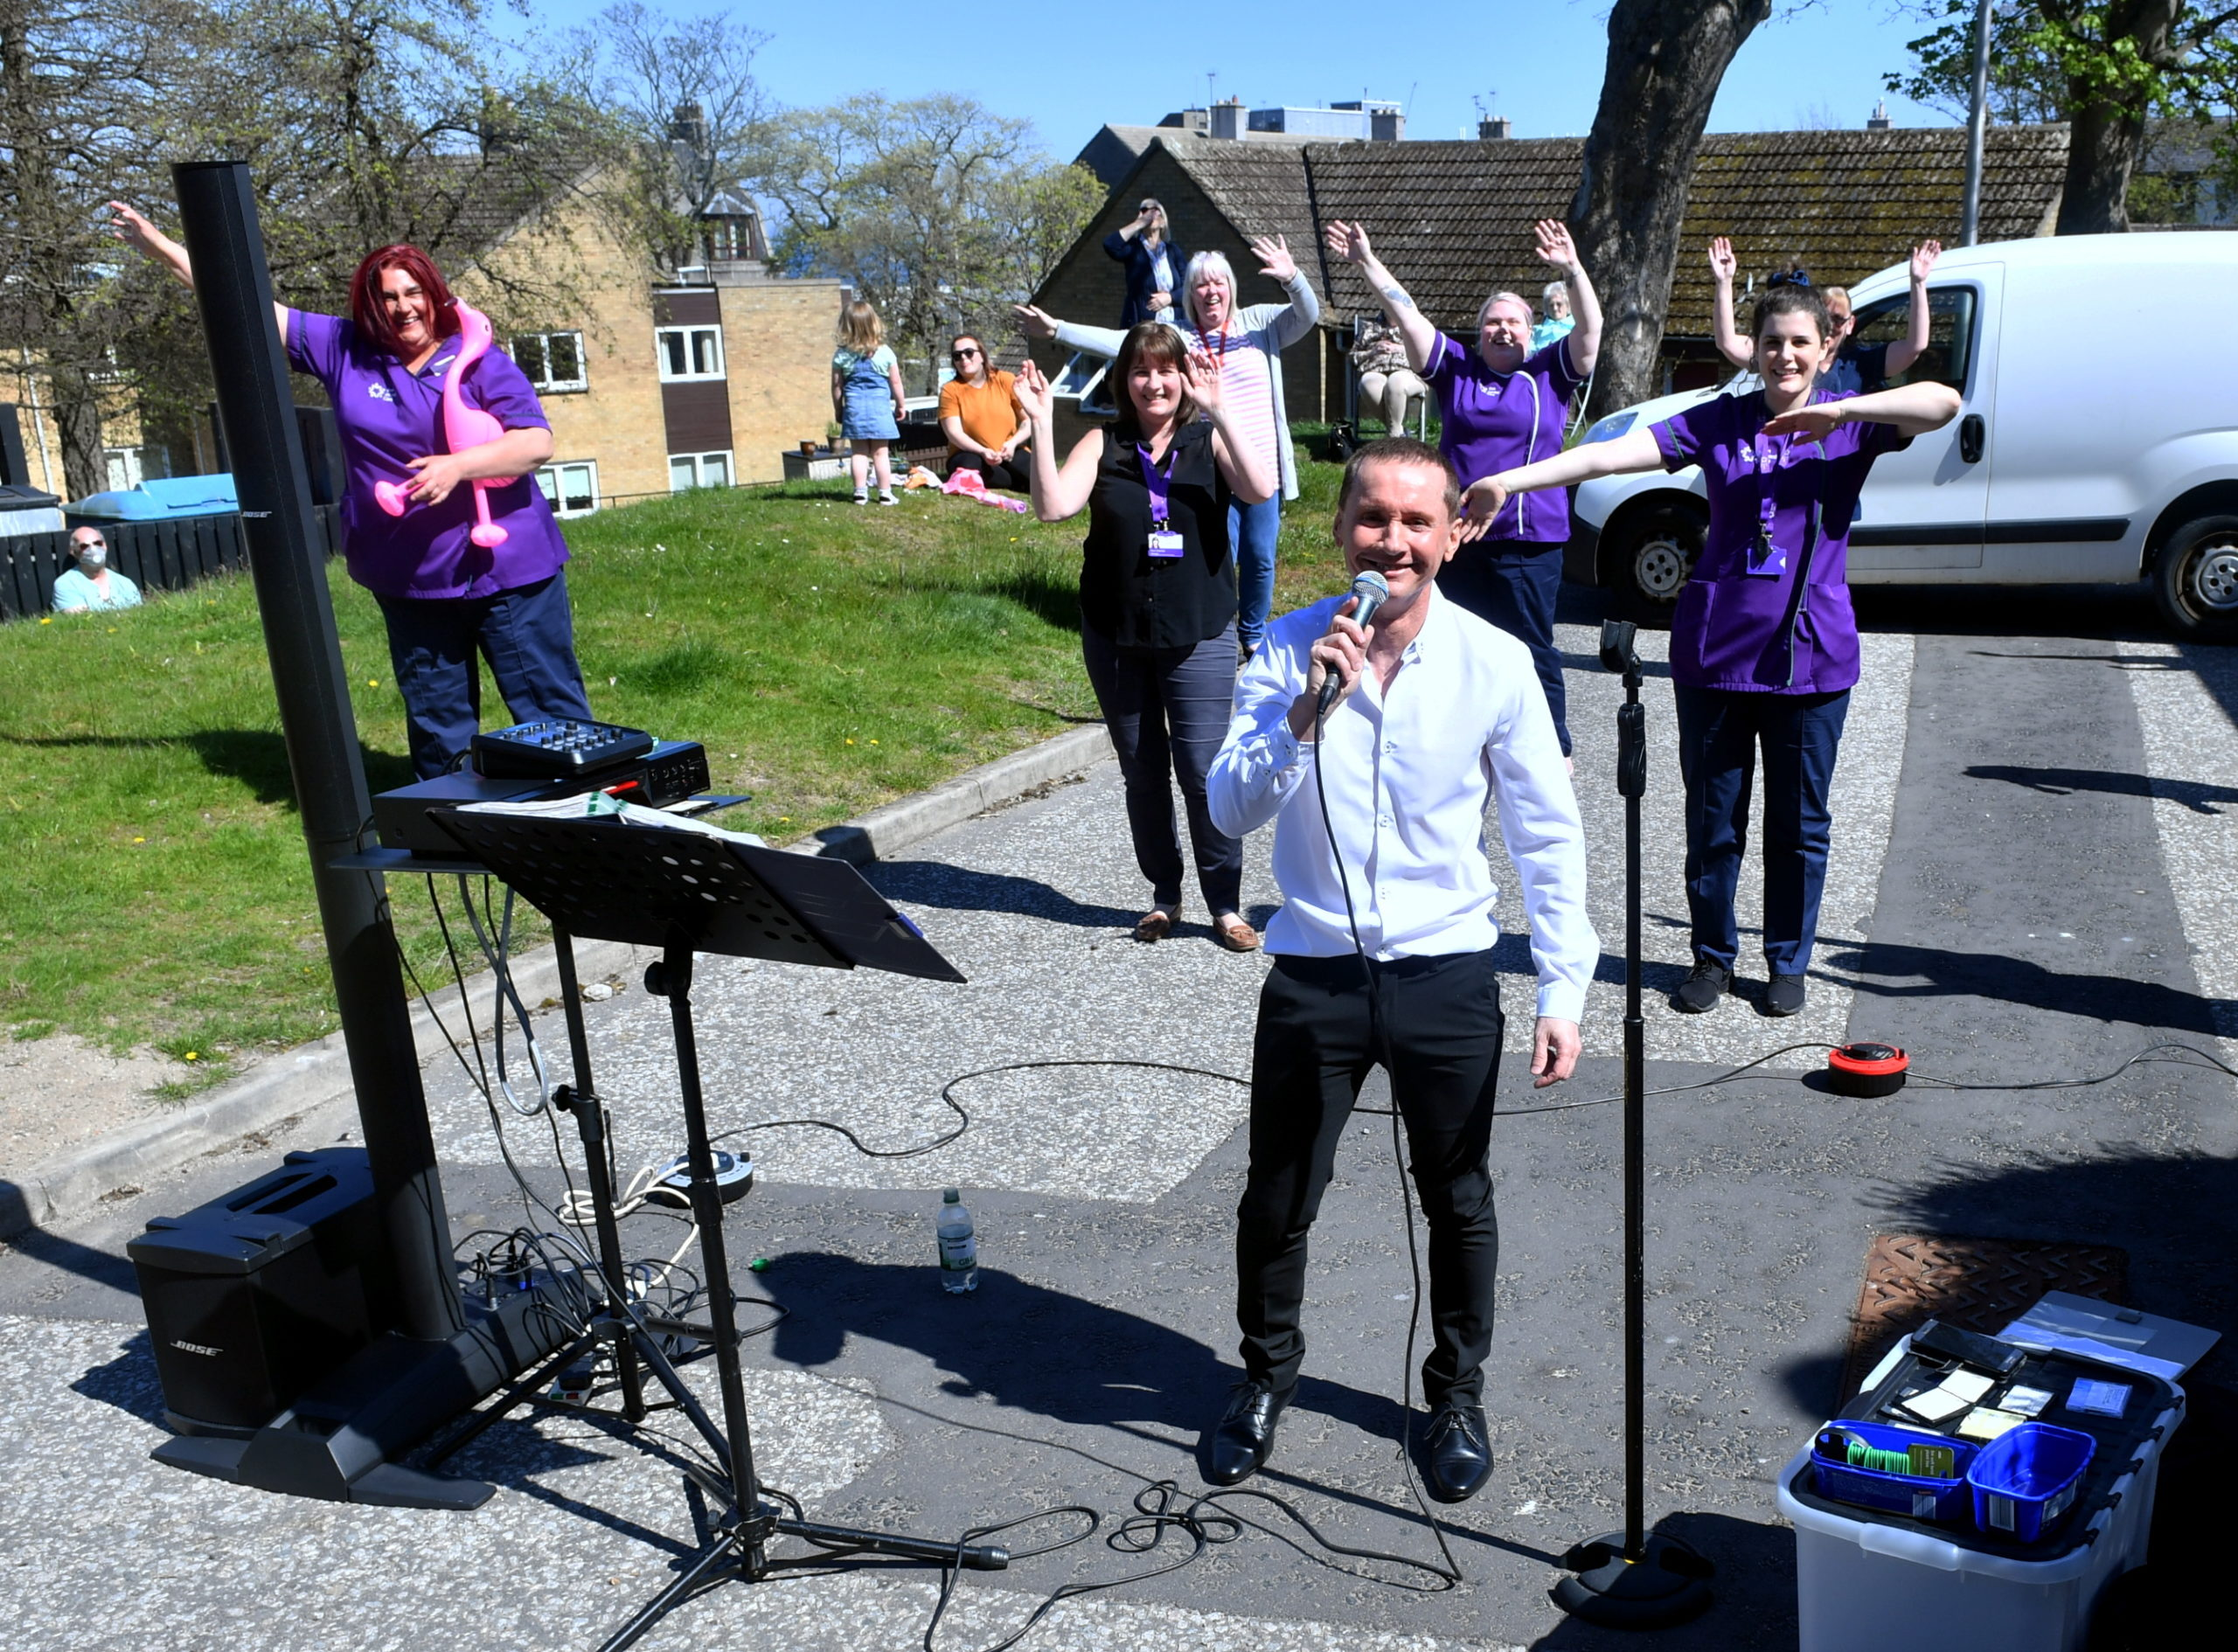 Singer Calum McDonald performed for the residents of Balnagask House in Torry